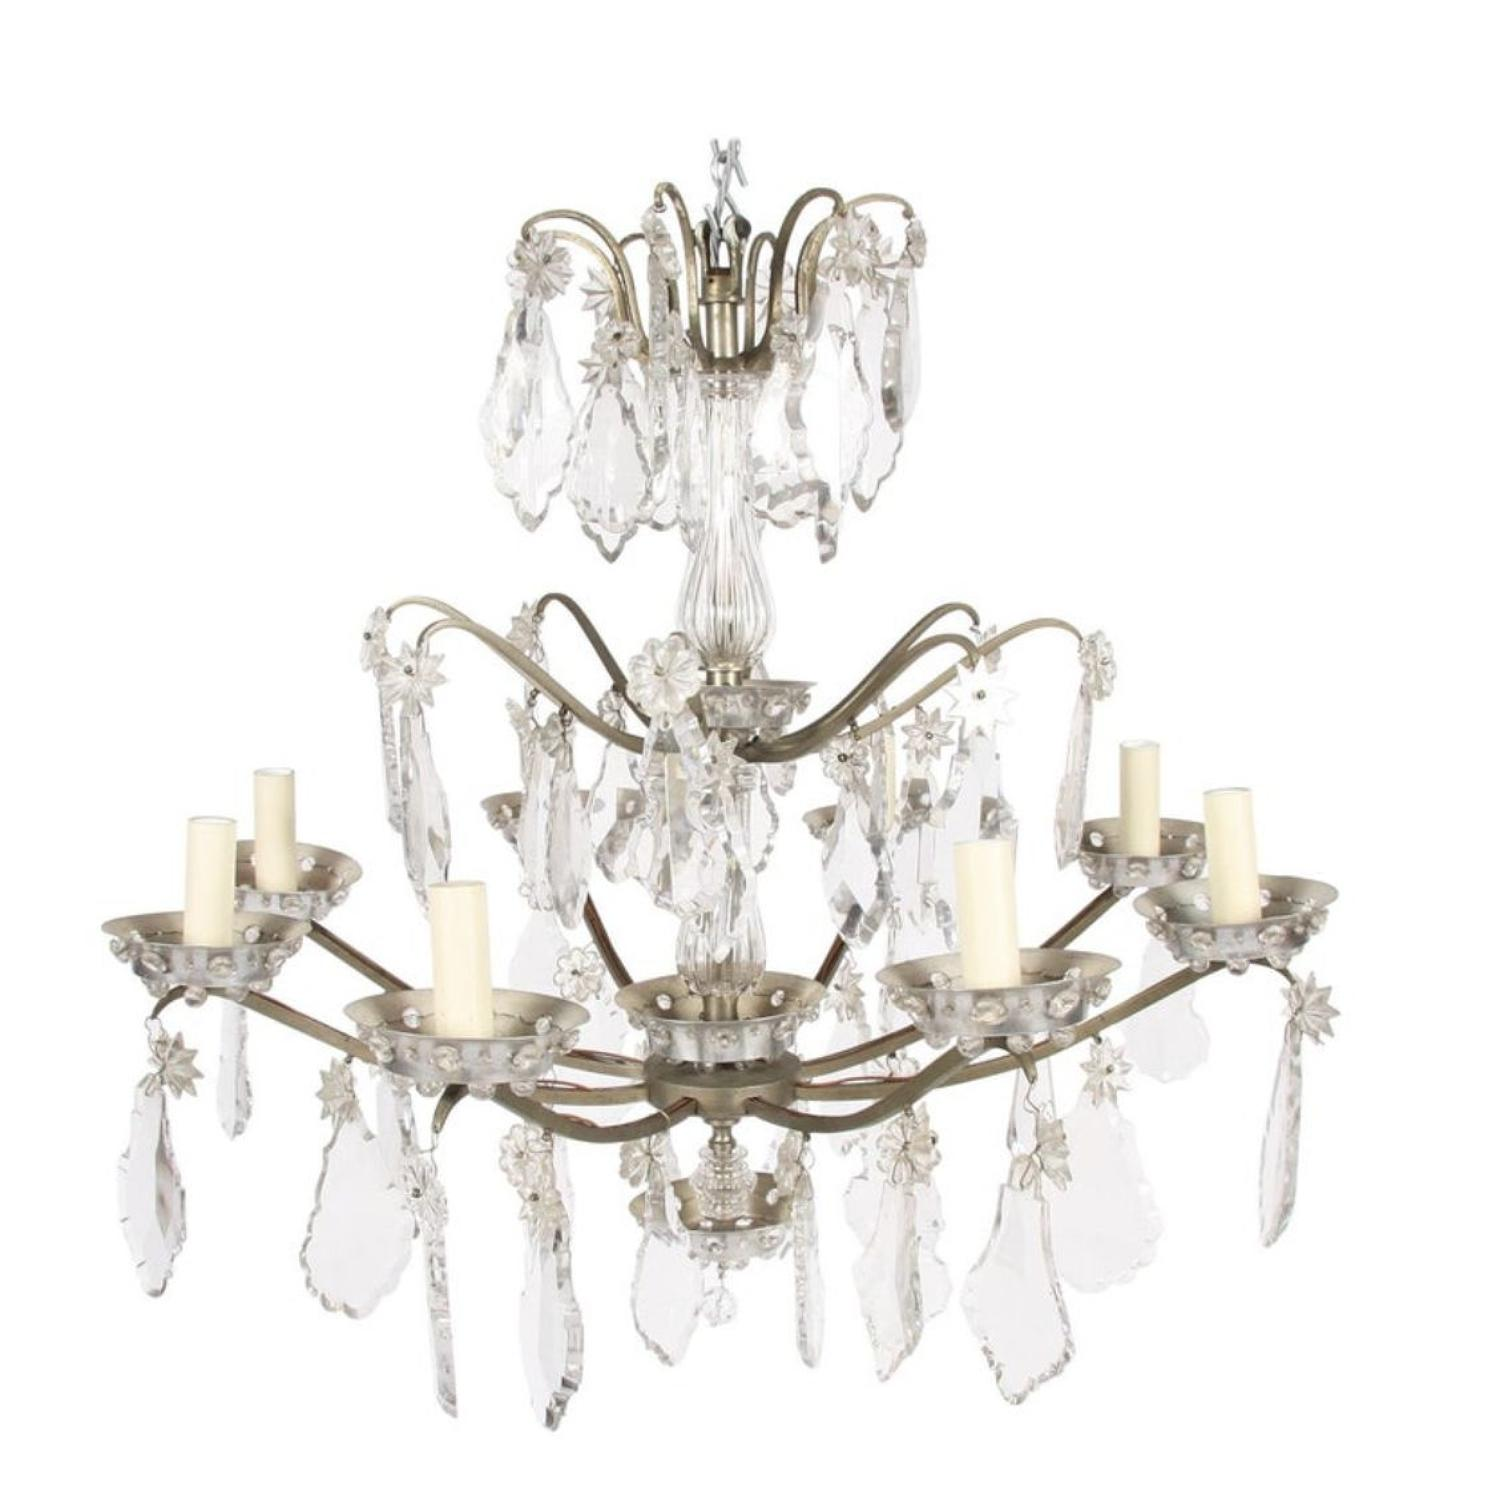 Metal & Crystal Chandelier by Baccarat